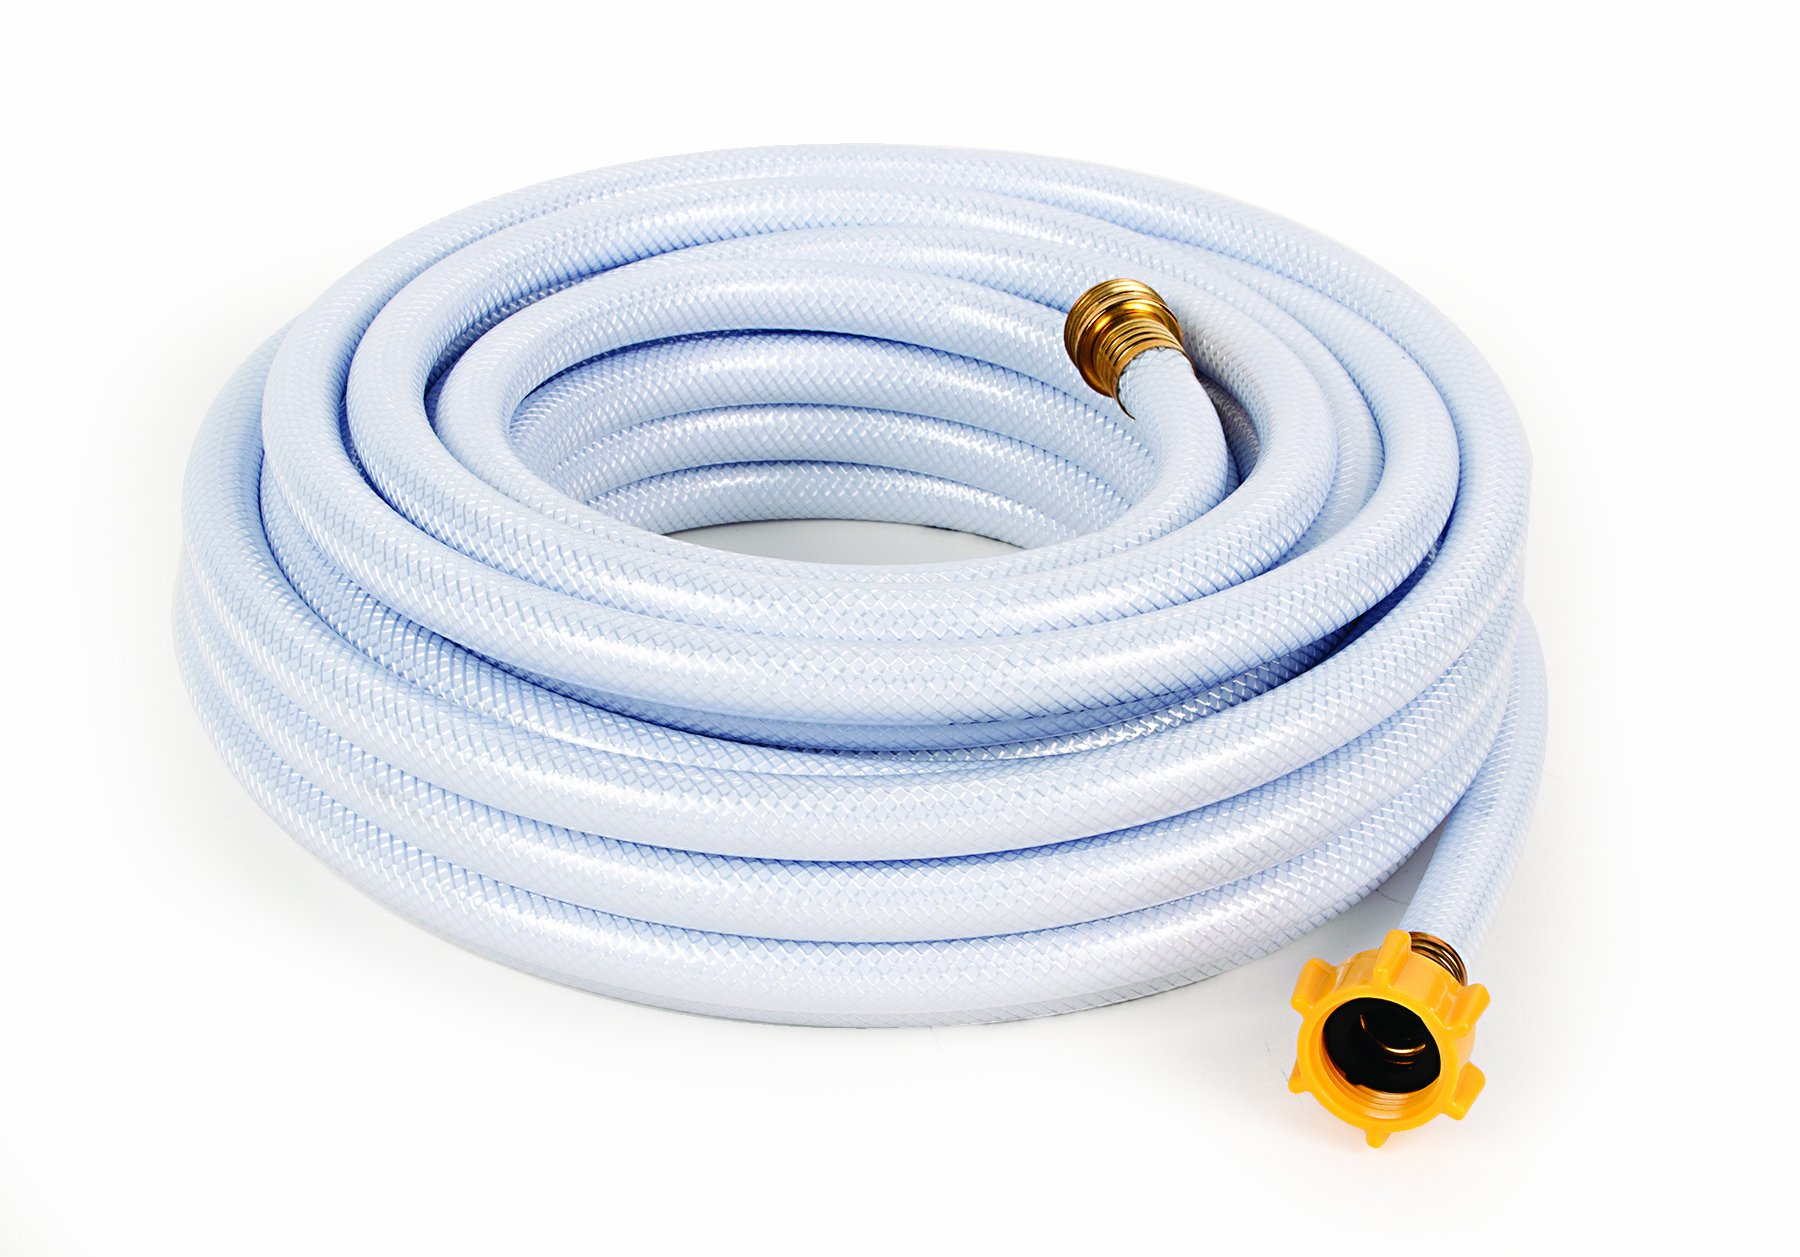 Camco 75ft TastePURE Drinking Water Hose- Lead and BPA Free, Reinforced for Maximum Kink Resistance 5/8''Inner Diameter (22803) by Camco